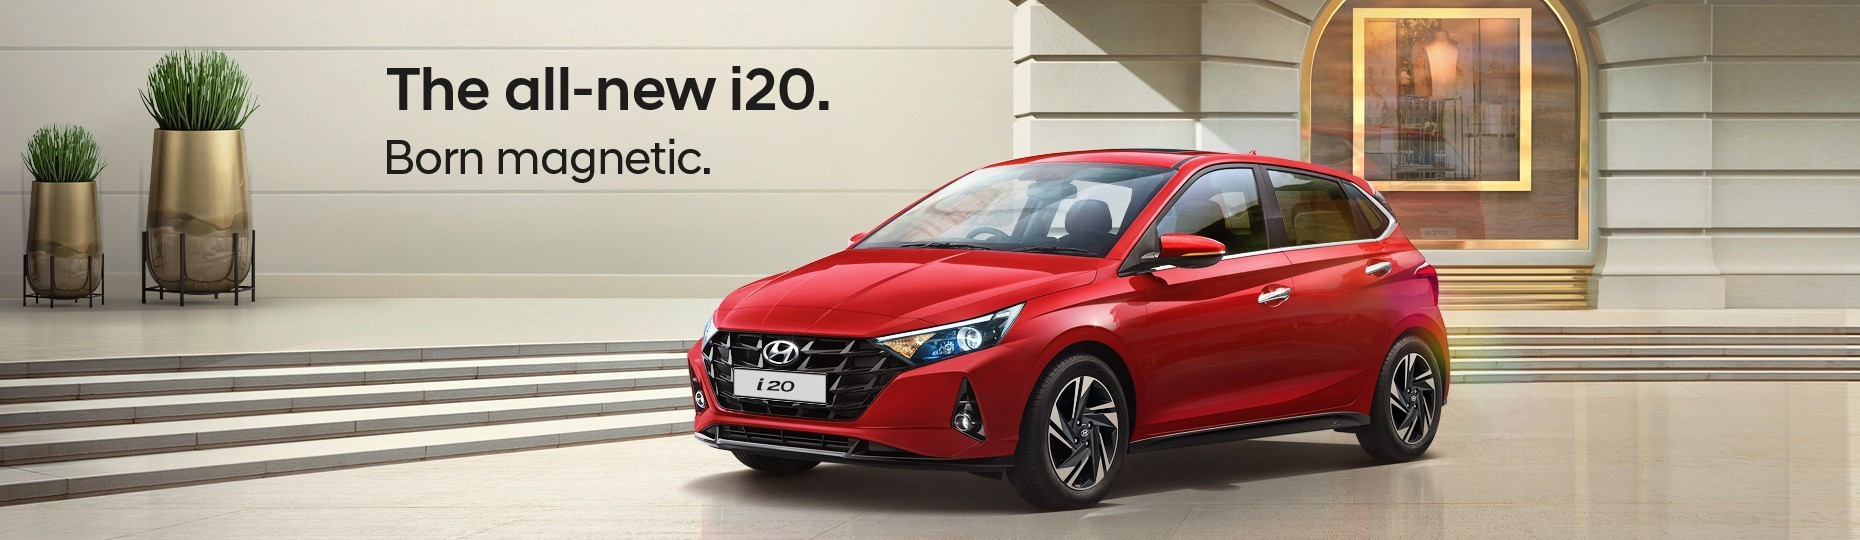 The all-new i20